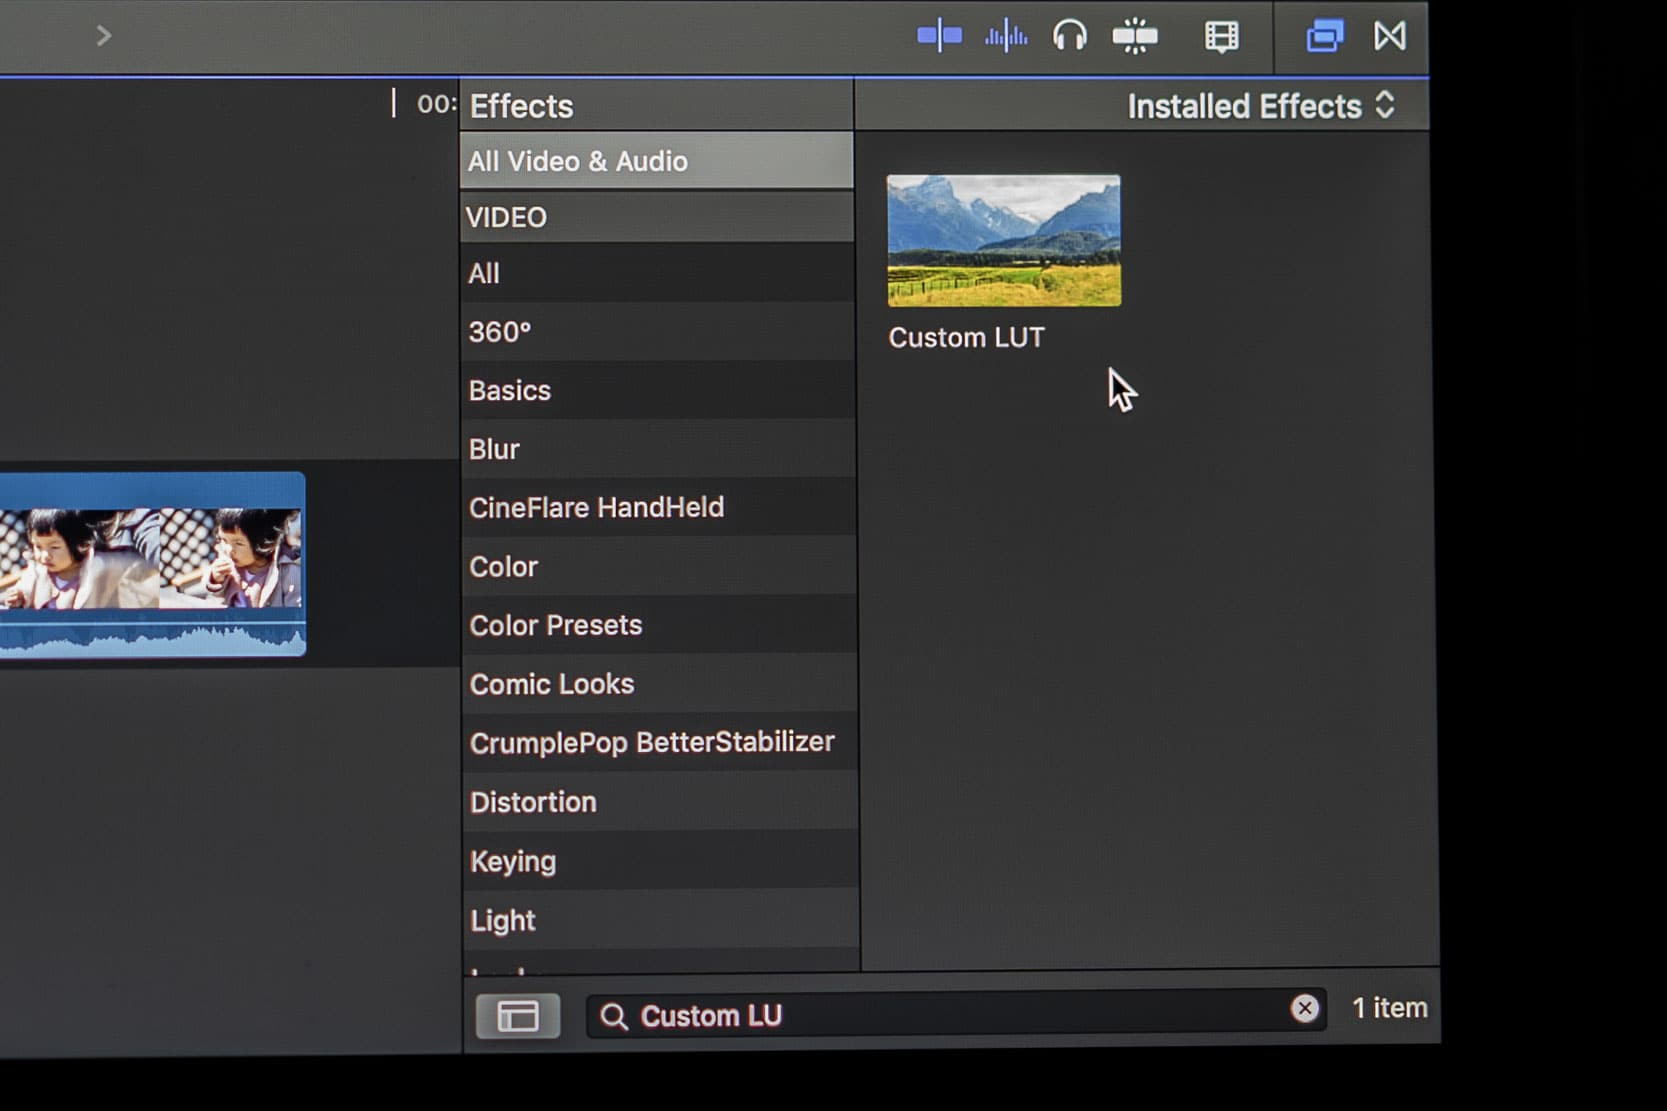 How to use Custom LUT in Final Cut Pro X • Lumosmax